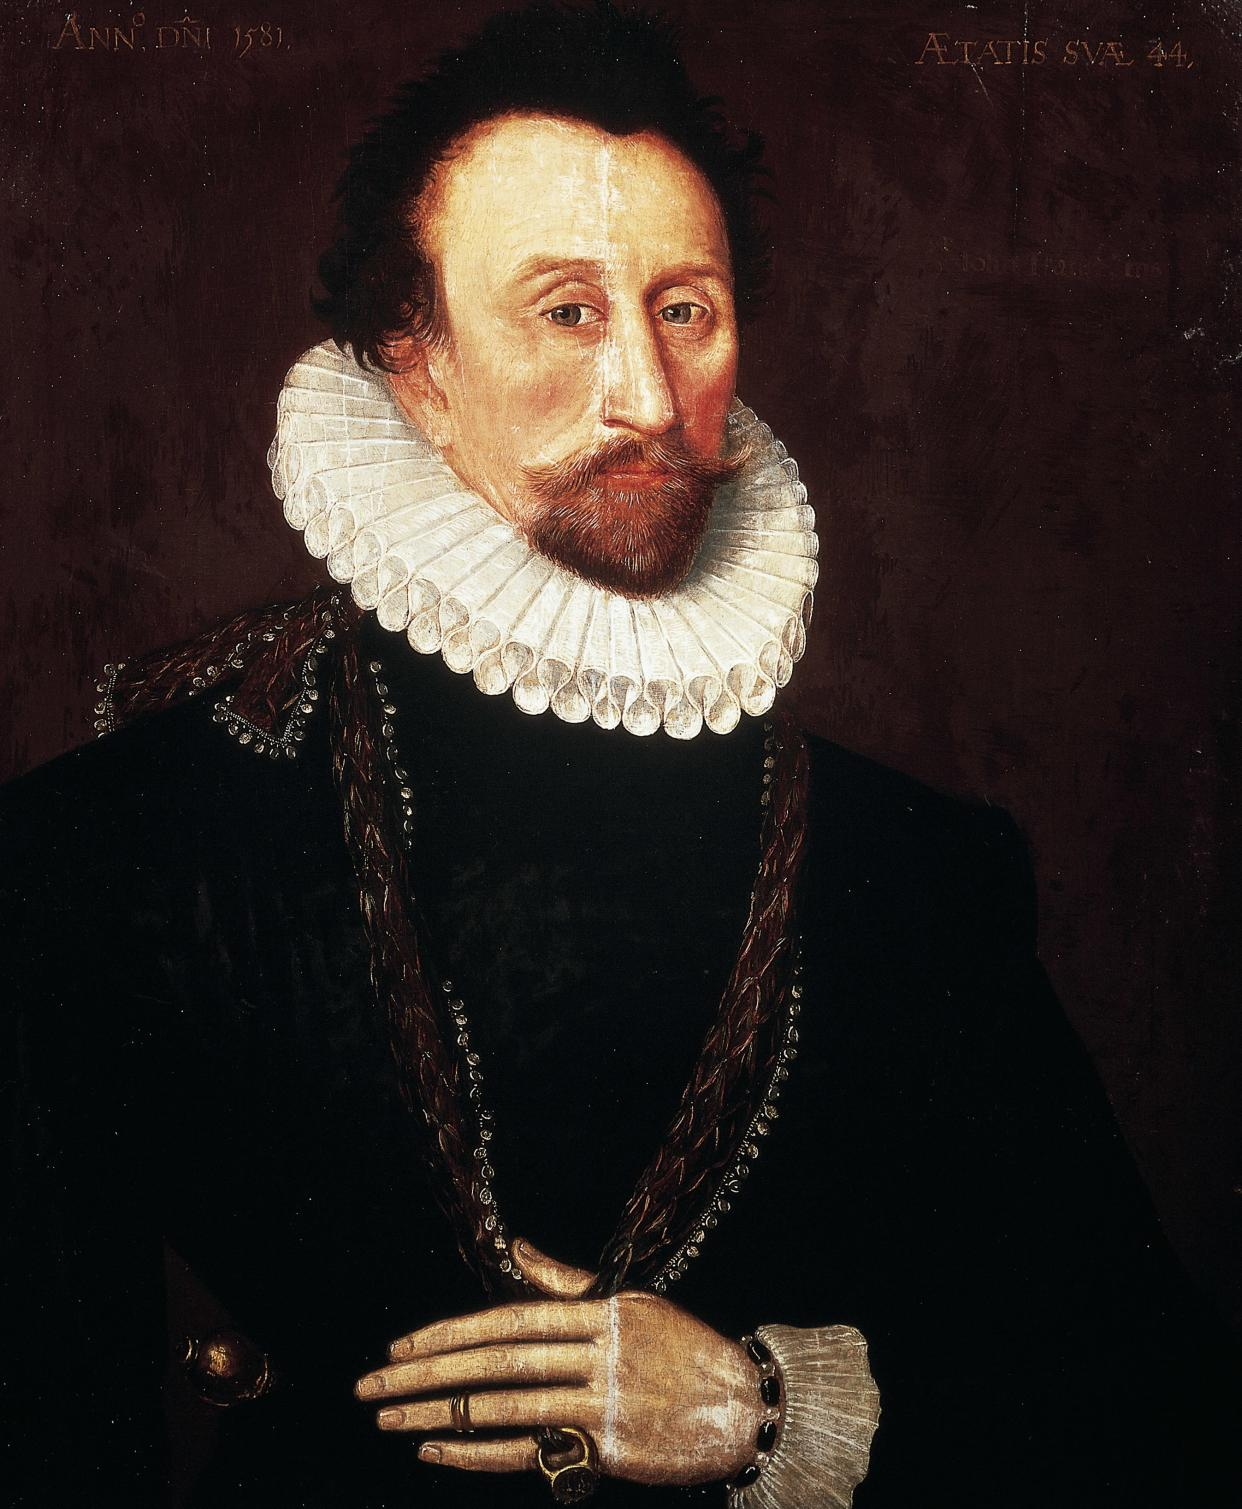 UNSPECIFIED - CIRCA 2003: Portrait of Sir John Hawkins (1532-95), cousin of Francis Drake, English privateer, slave trader and treasurer of the Royal Navy, he served as Rear Admiral against the Spanish Invecible Armada, 1588. London-Greenwich, National Maritime Museum (Photo by DeAgostini/Getty Images)